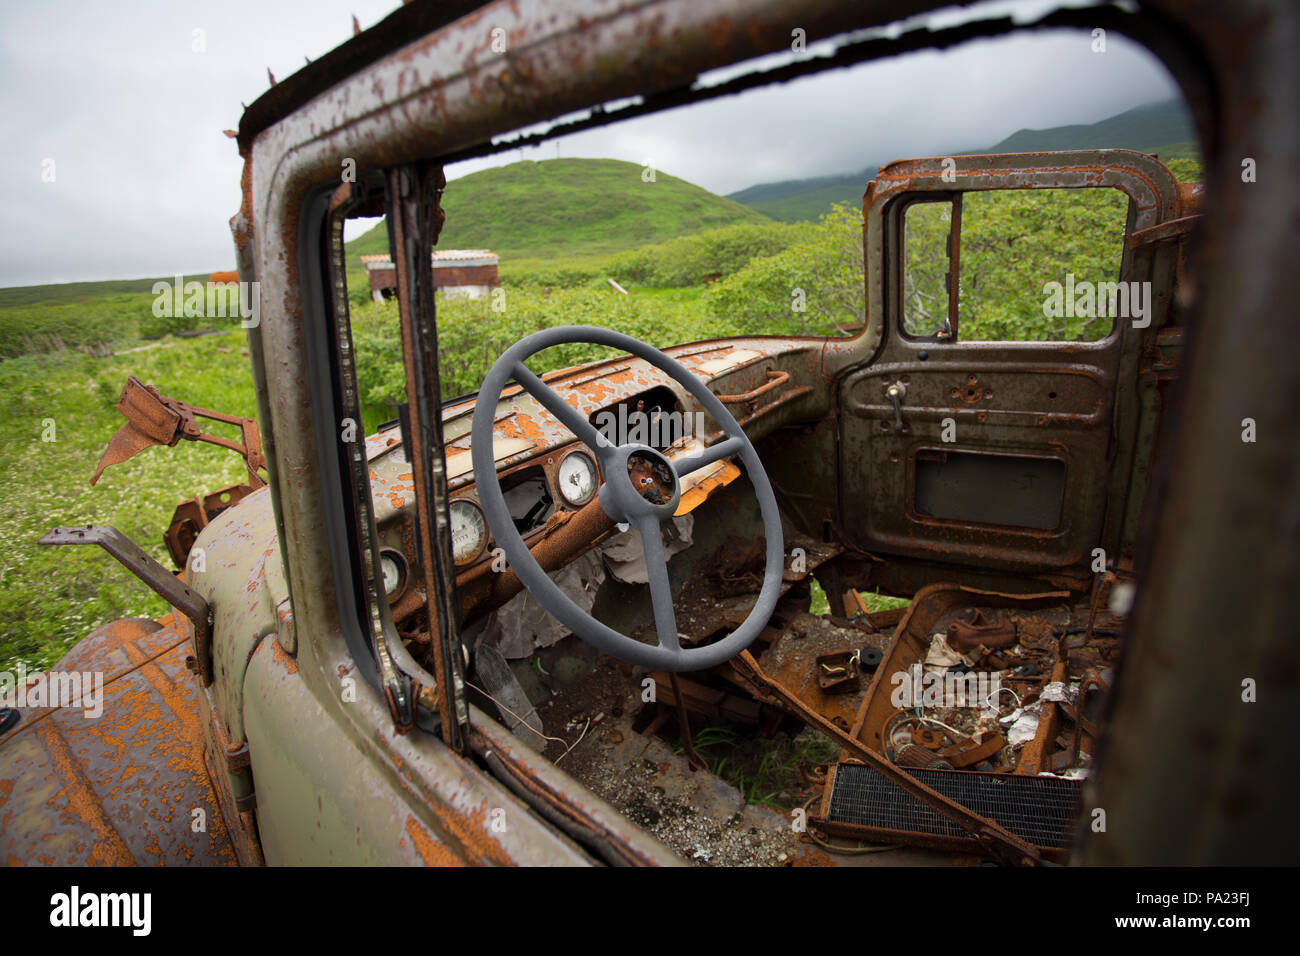 Military Vehicle Abandoned High Resolution Stock Photography And Images Alamy